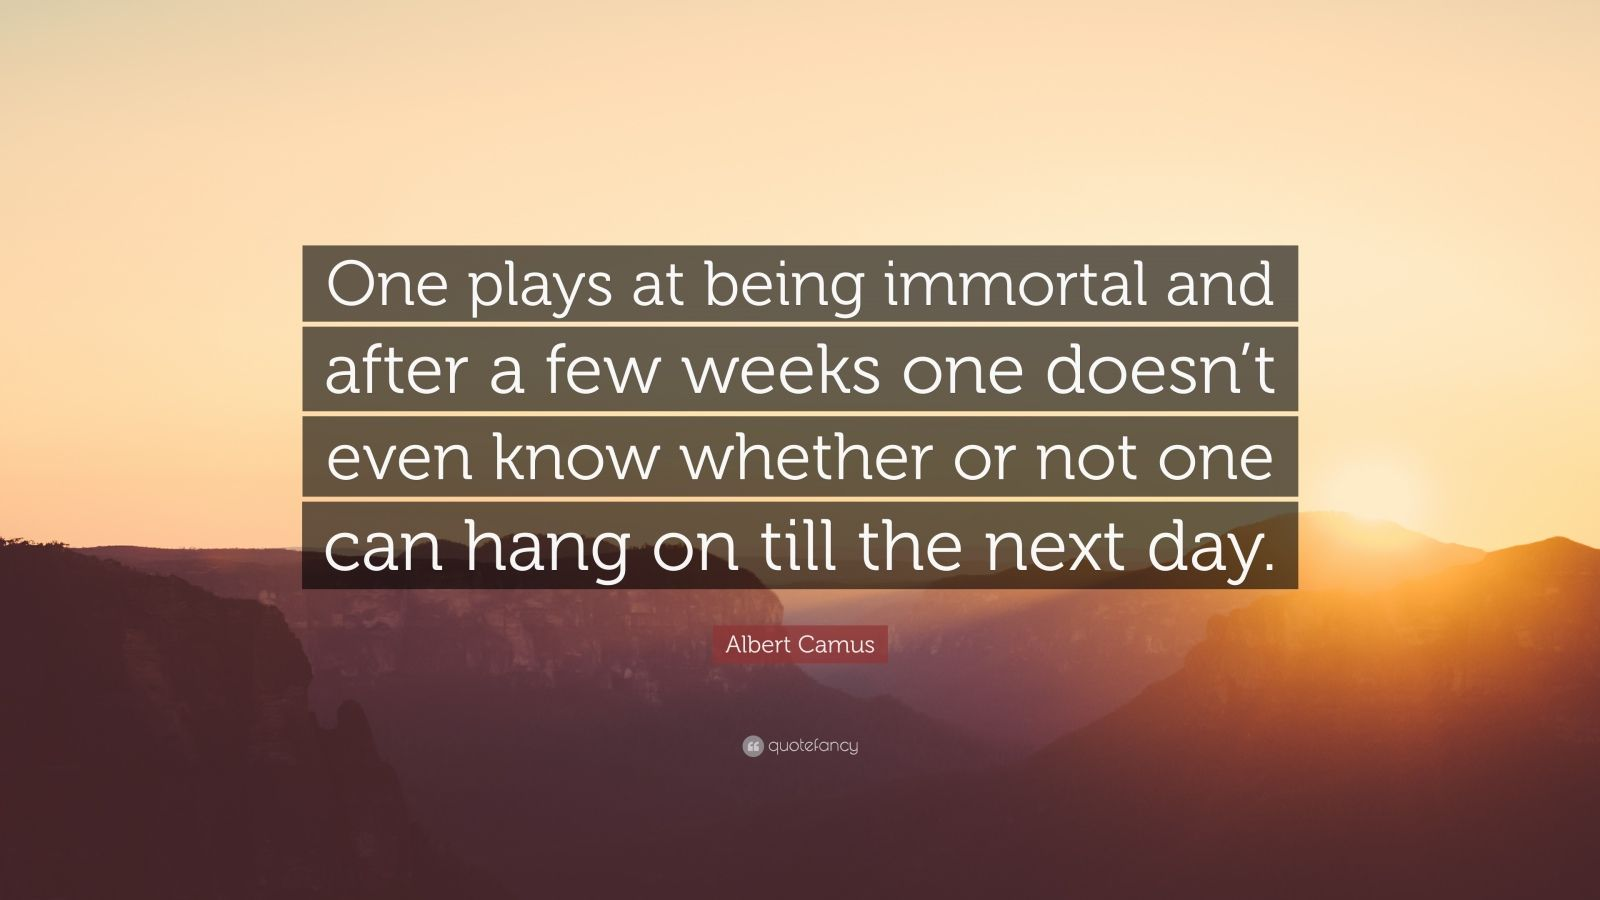 """Albert Camus Quote: """"One plays at being immortal and after a few weeks one doesn't even know whether or not one can hang on till the next day."""""""